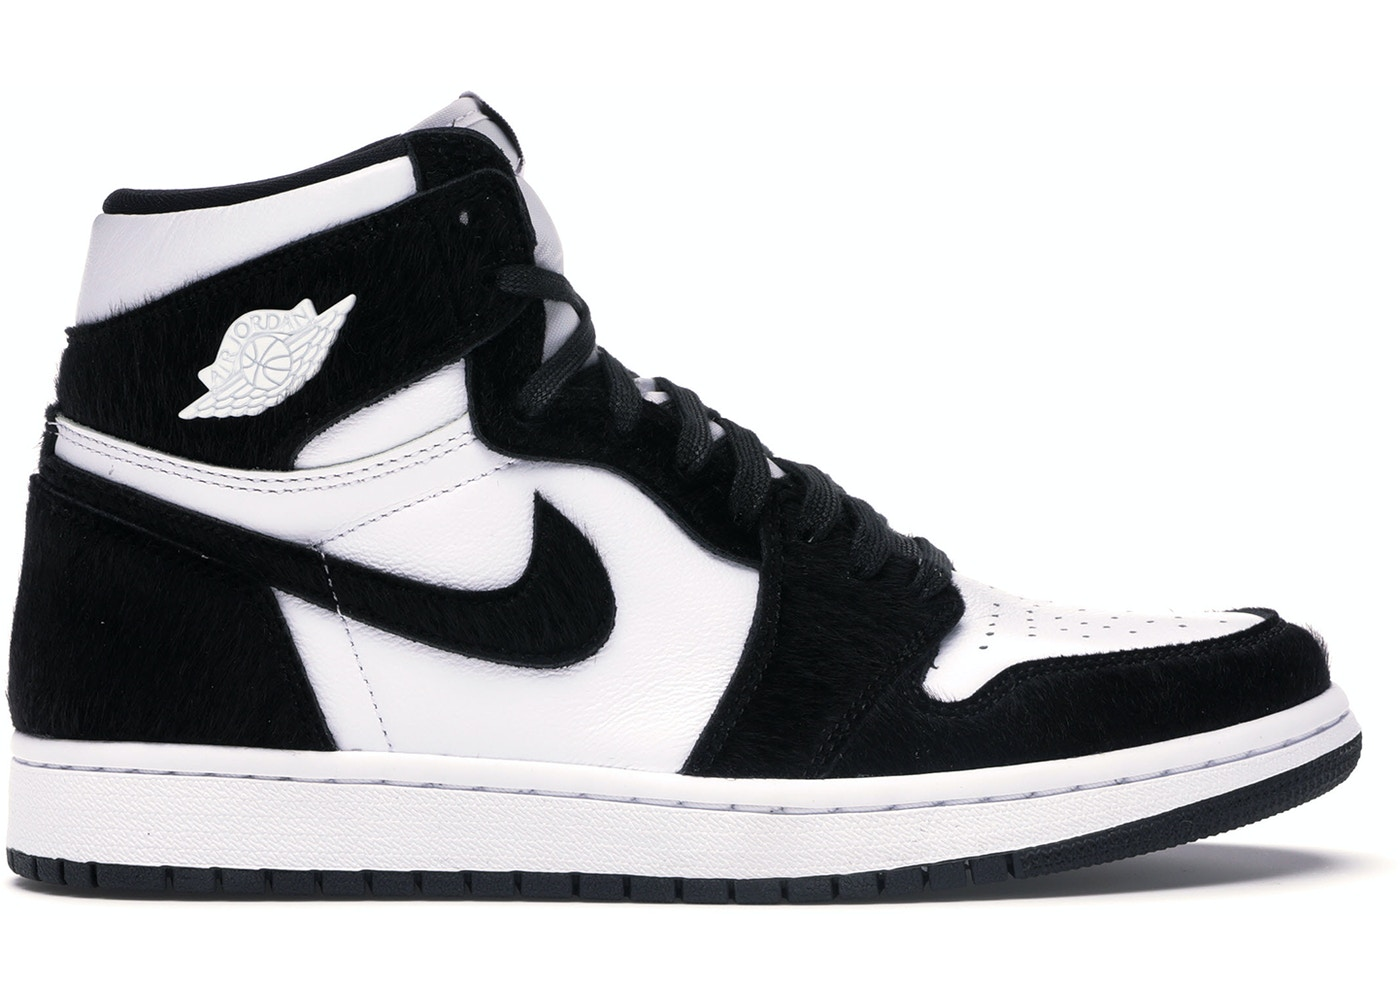 on sale 6fd3a 779be Jordan 1 Retro High Twist (W)